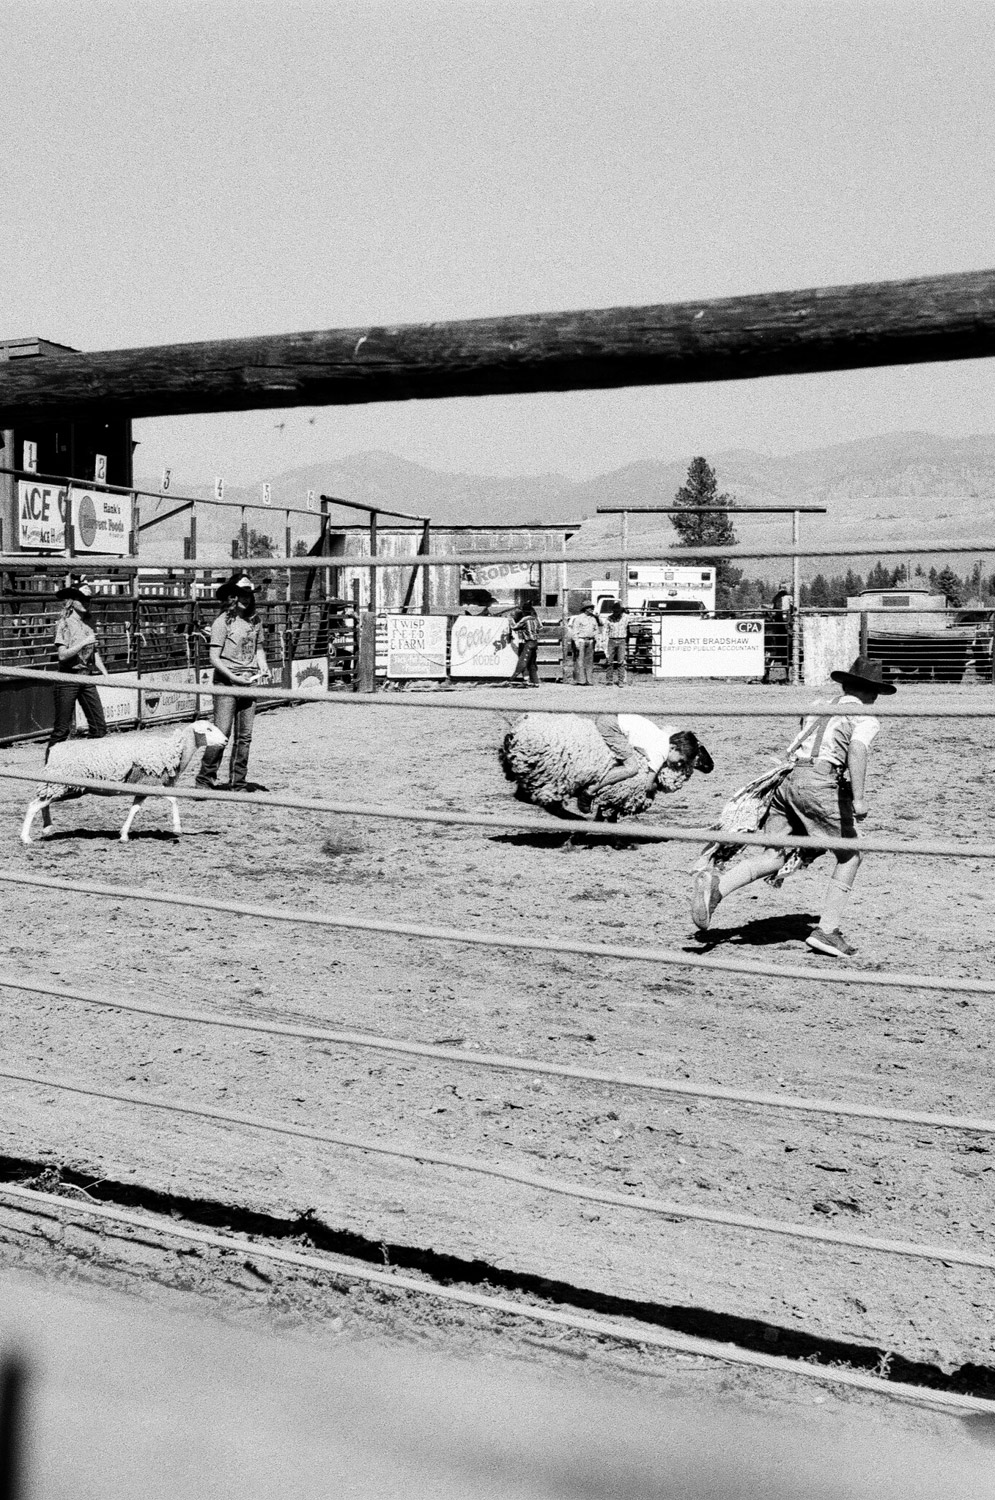 mutton_busting_rodeo-2.jpg